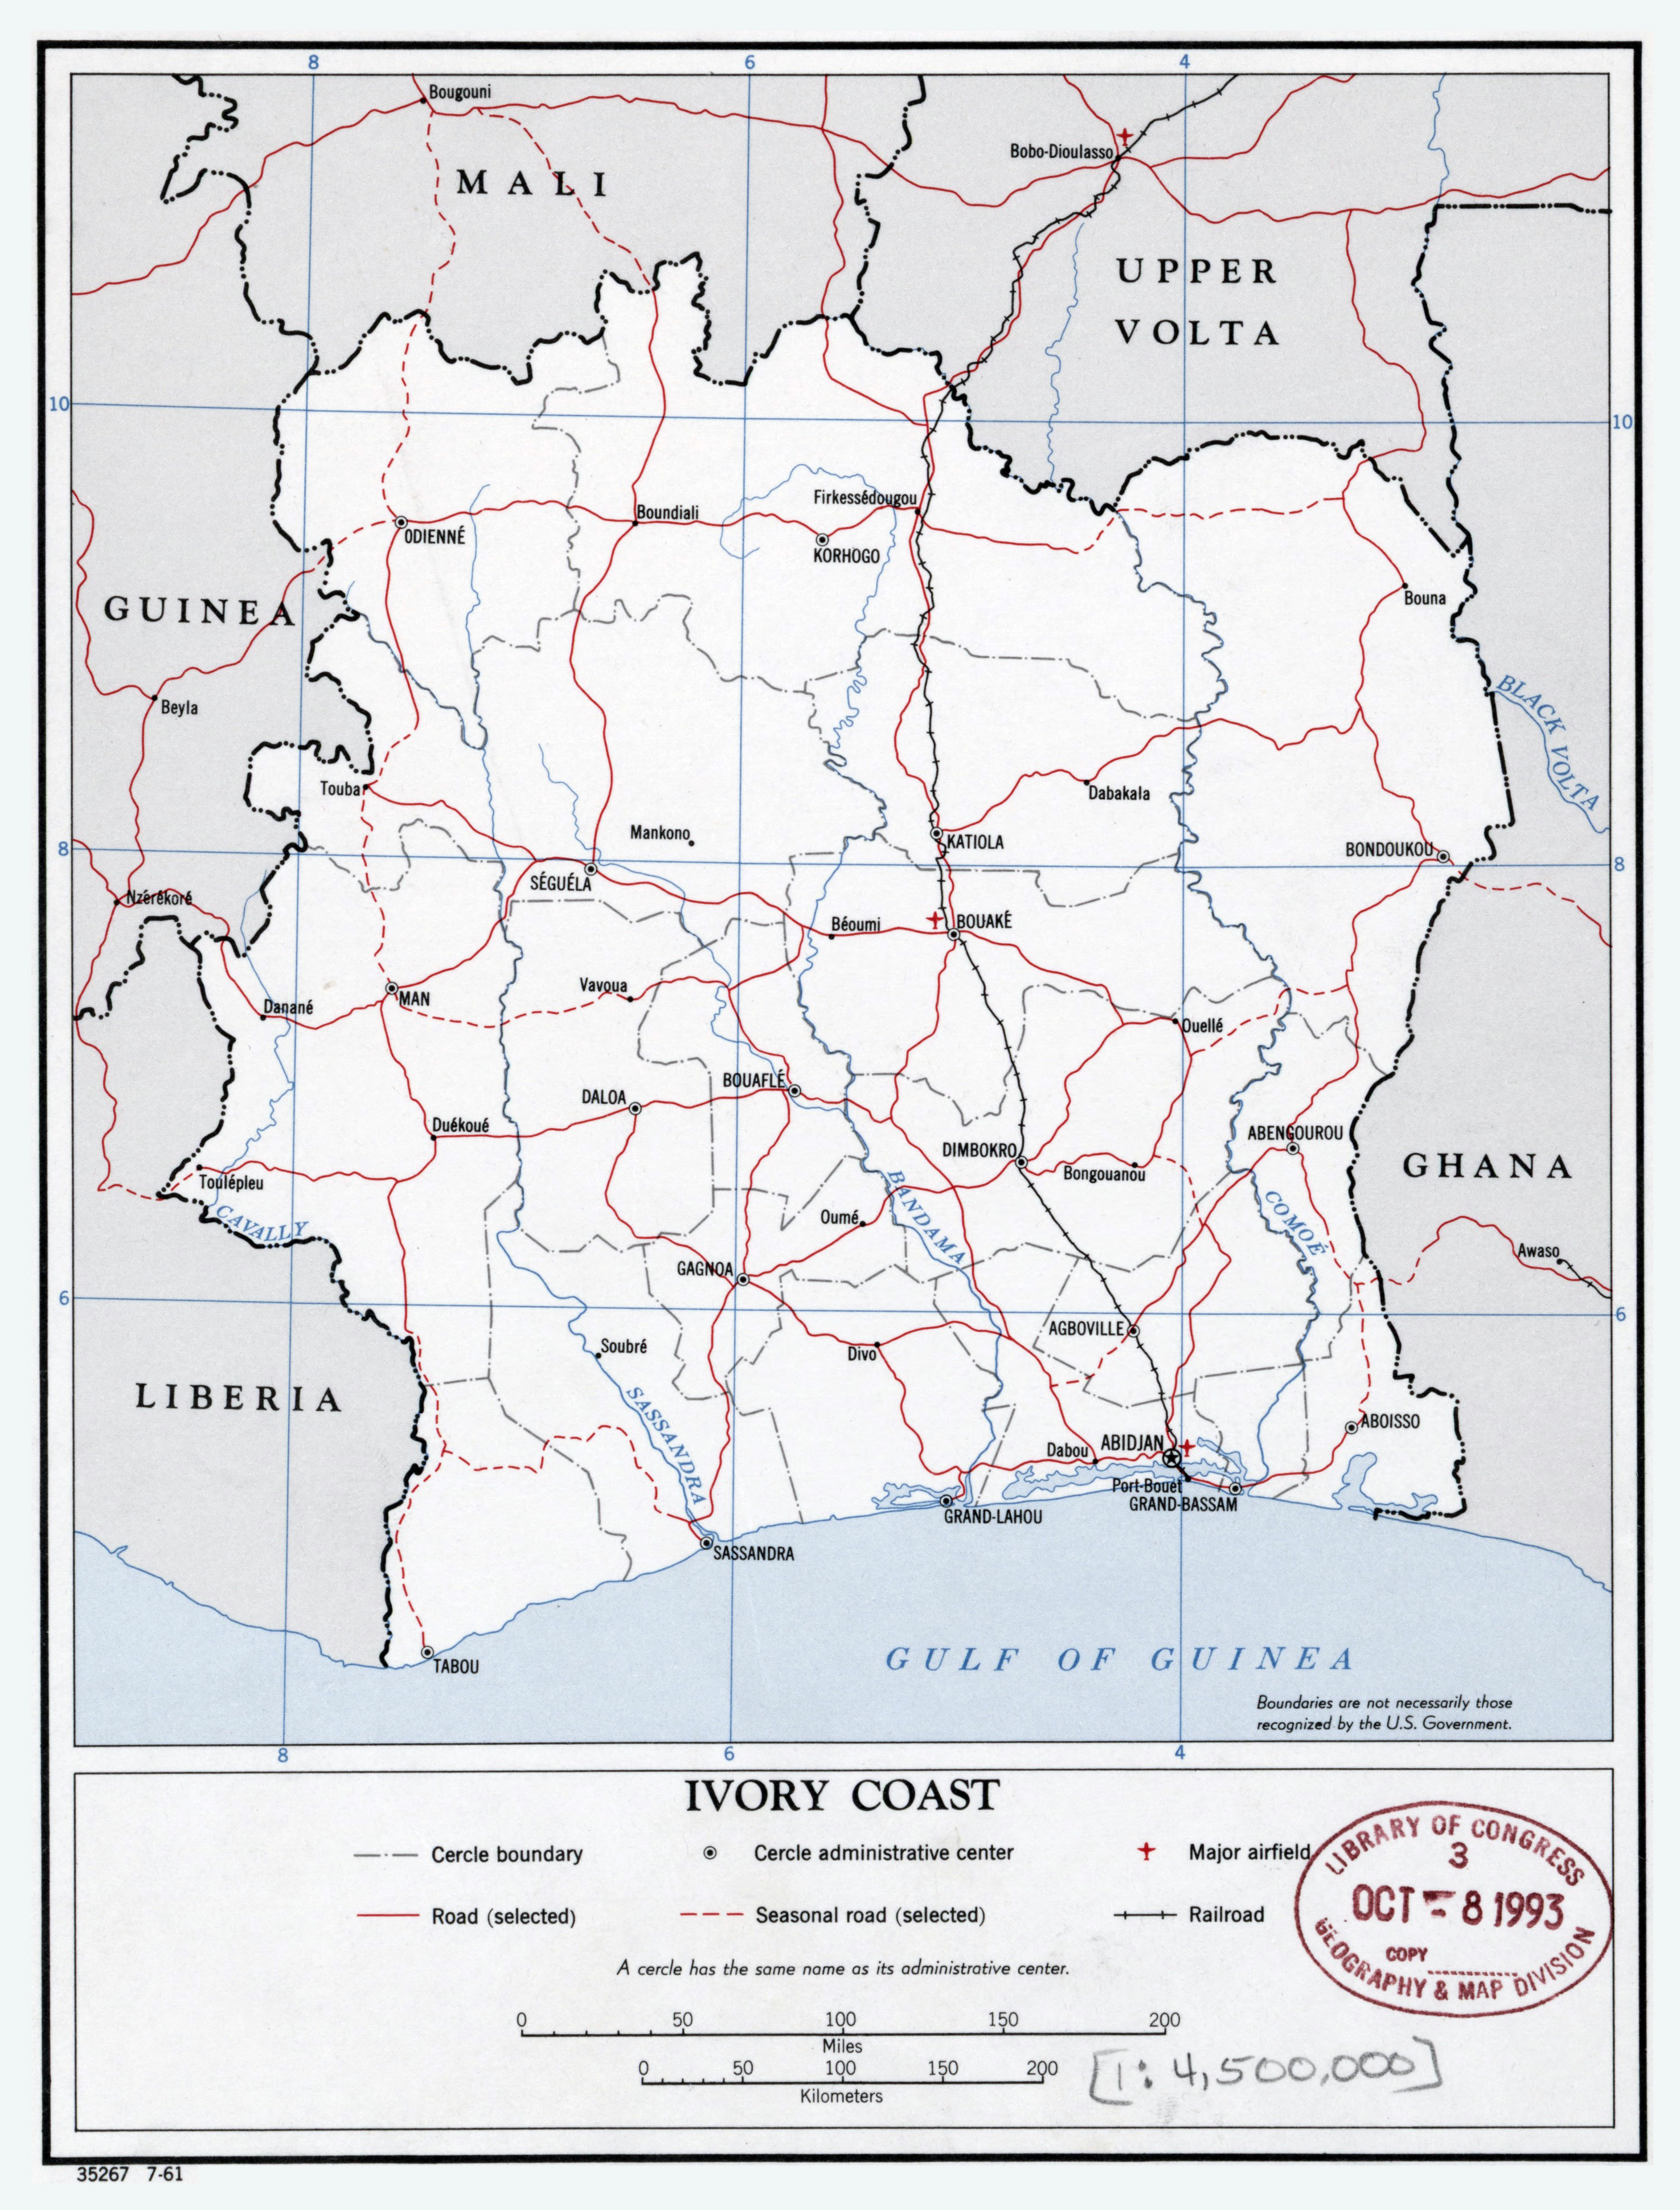 Large Scale Political And Administrative Map Of Ivory Coast With - Ivory coast map of africa